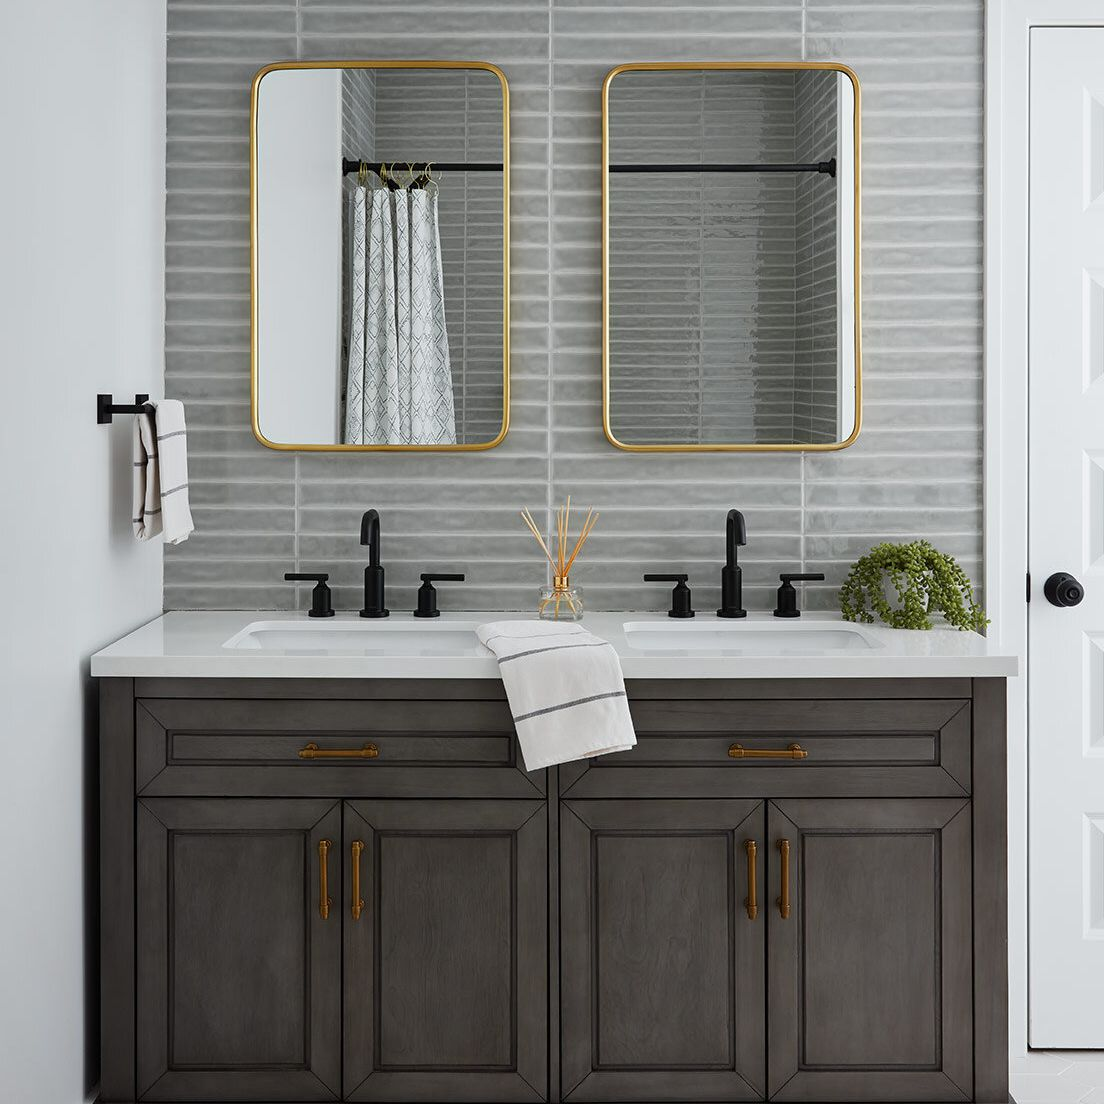 A double vanity mounted on a gray tile-lined wall